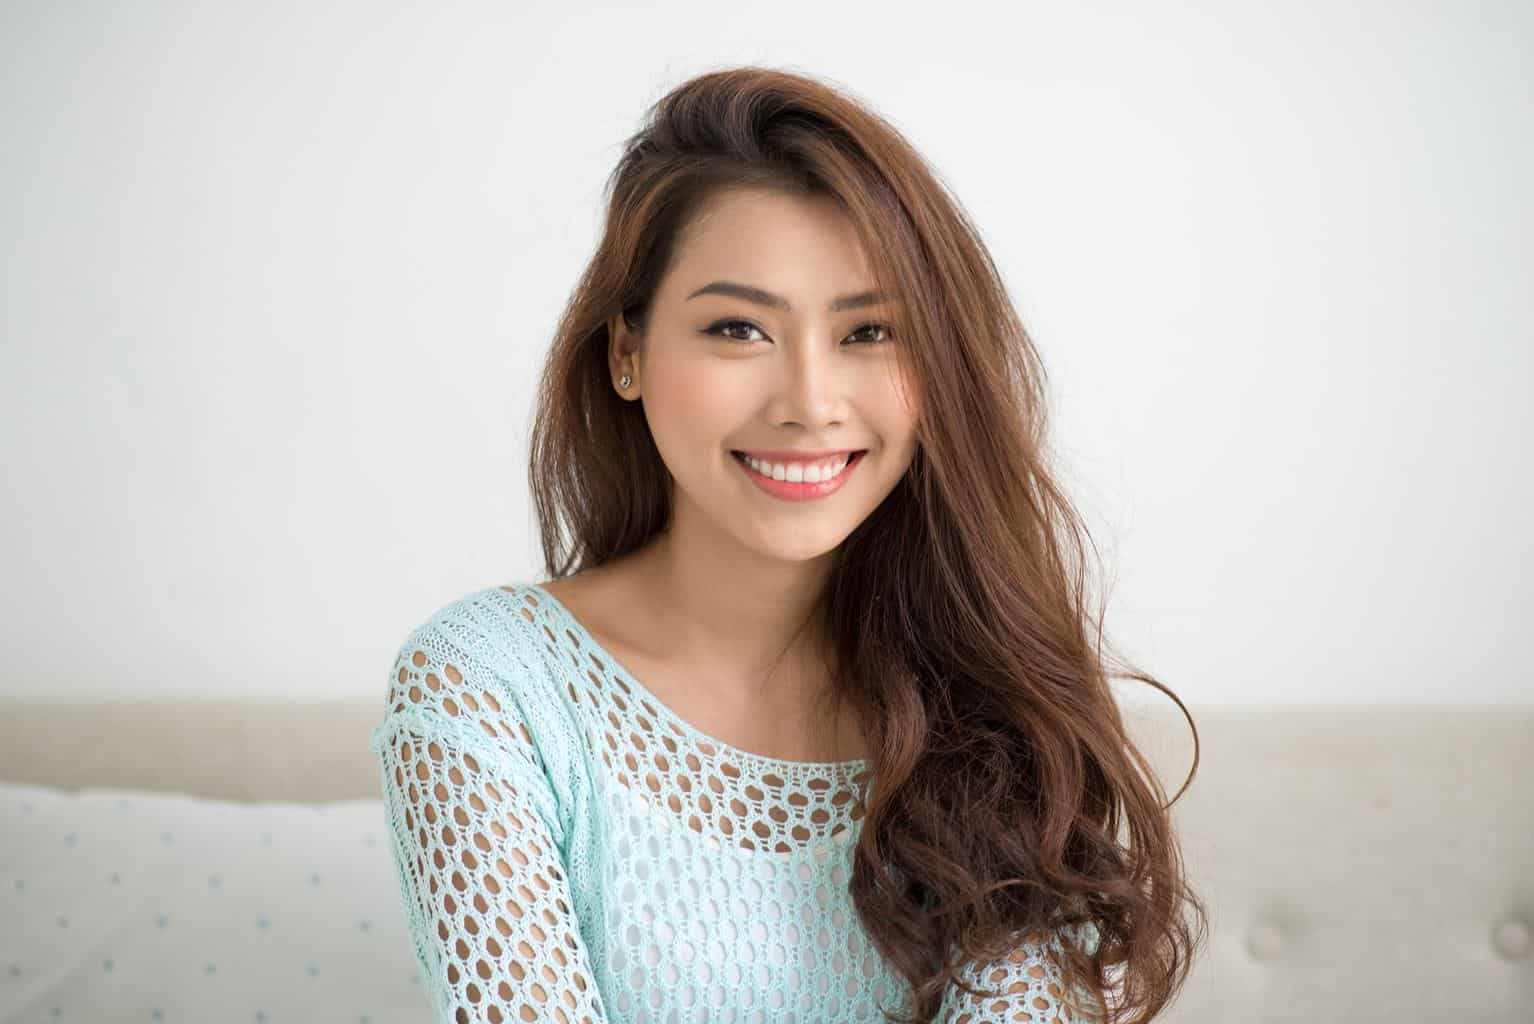 south korean dating South korean woman - are you looking for love, romantic dates register for free and search our dating profiles, chat and find your love online, members are waiting to meet you.